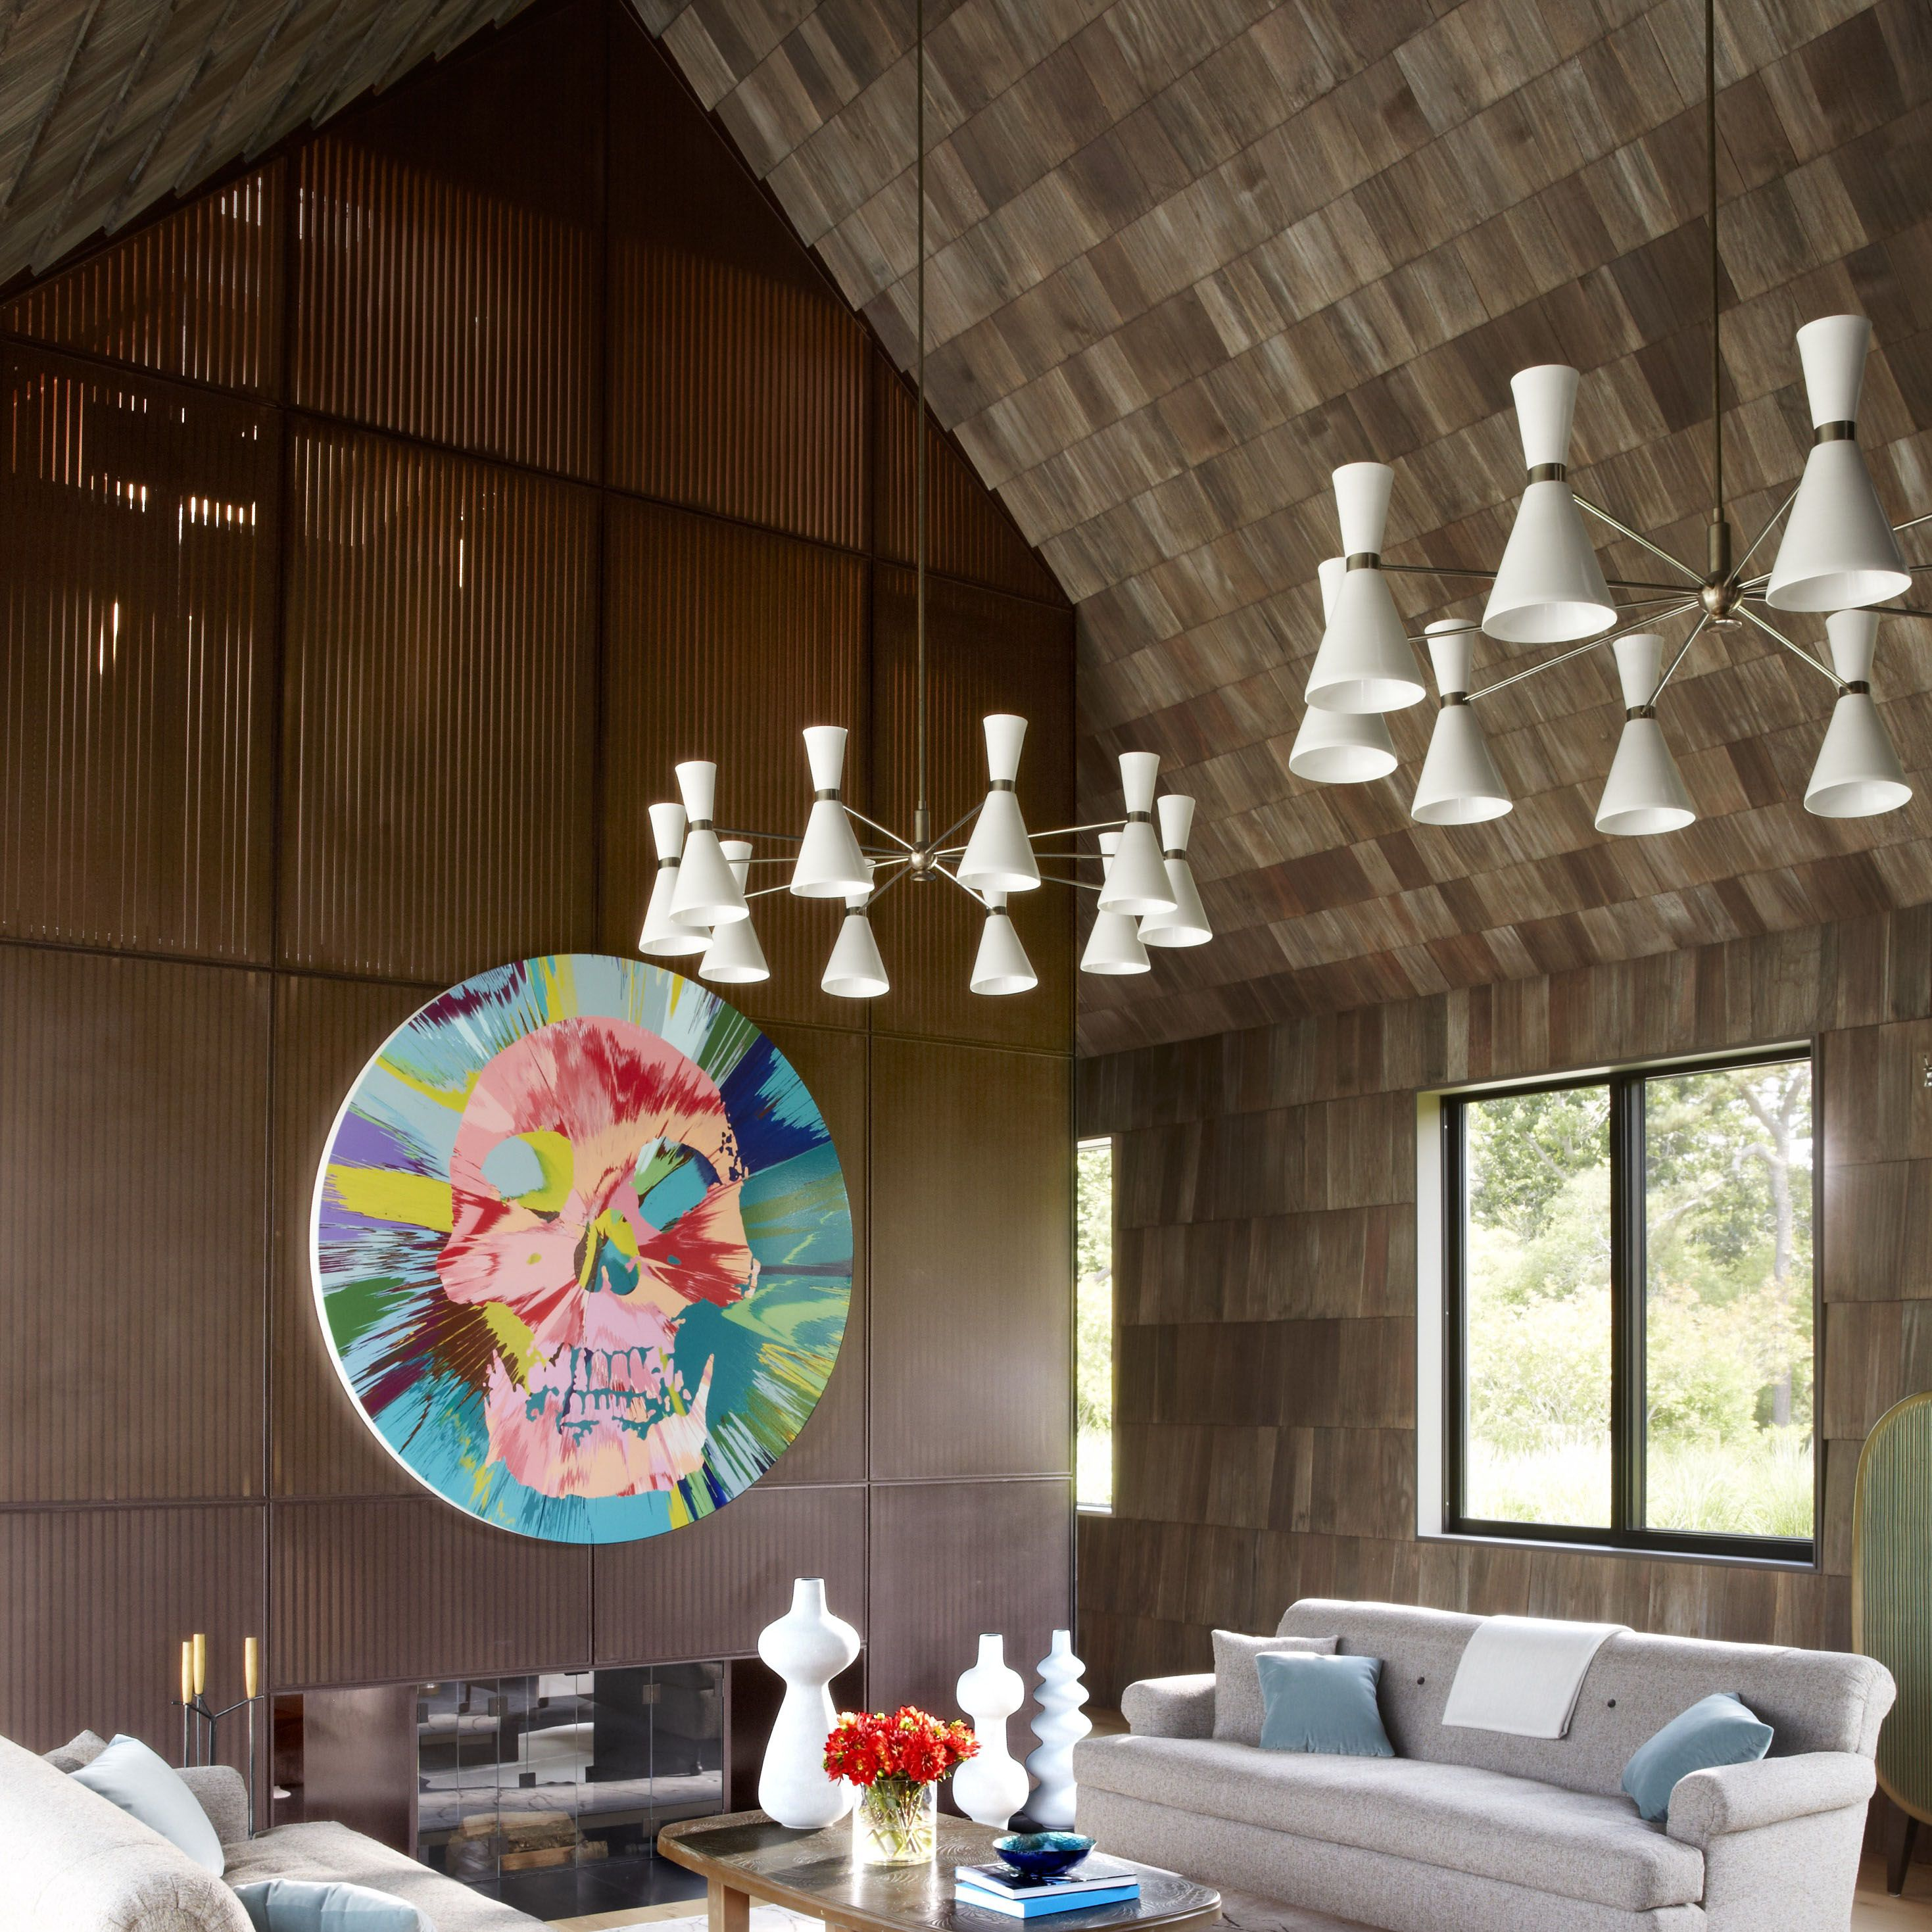 The living room of a Long Island house designed by the architectural firm Bates Masi + Architects, with interior decoration by Damon Liss&#x3B; a pair of sofas by BDDW flanks a 1970s Belgian cocktail table from Van den Akker, the Stilnovo chandeliers and the Brazilian bench are from the 1950s, and a painting by Damien Hirst hangs on a wall of cedar slats.